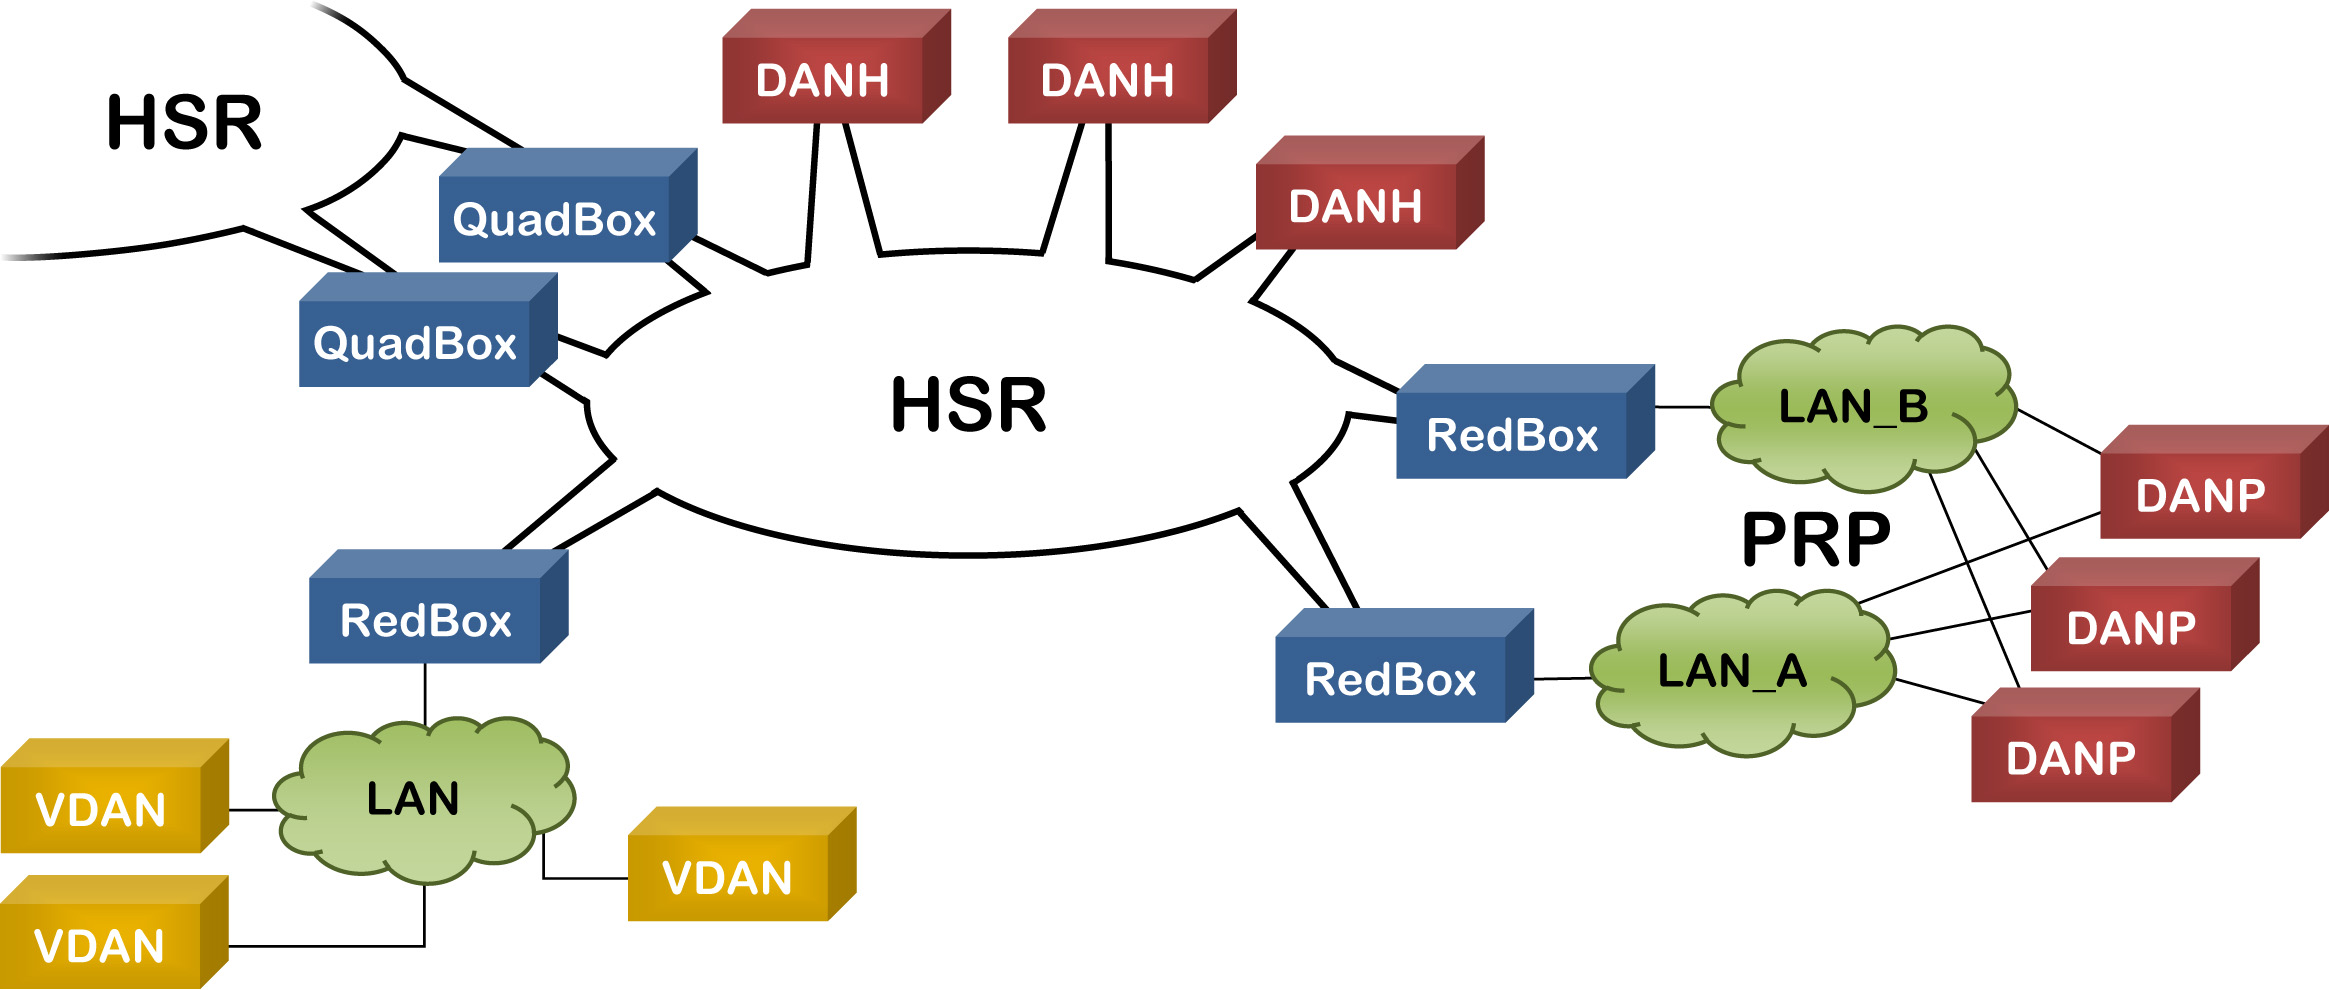 The concept of HSR